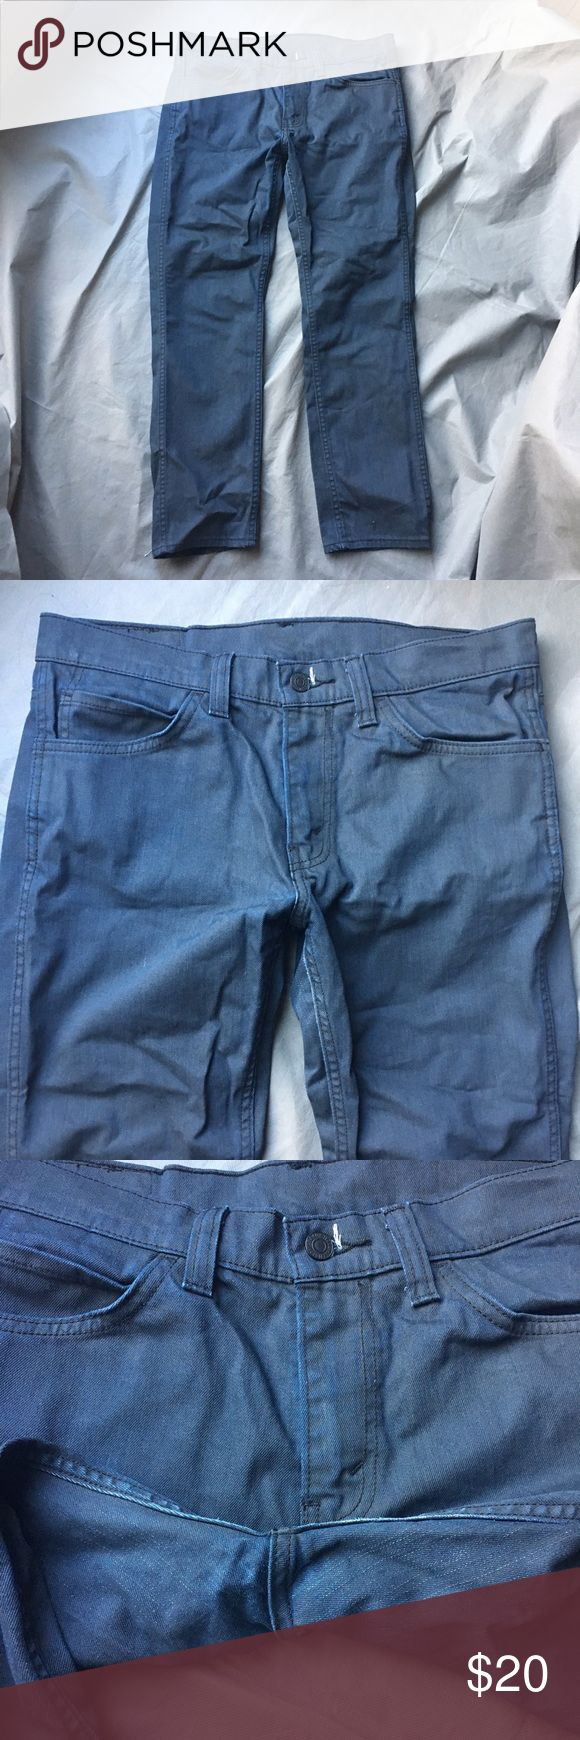 Levi's Blue Jeans Denim 511 32 x 30 Men's Slim Light fading of the blue in certain spots. Otherwise a great pair of jeans. Check out our closet for great bundle offers! Price firm unless bundled! Levi's Jeans Slim